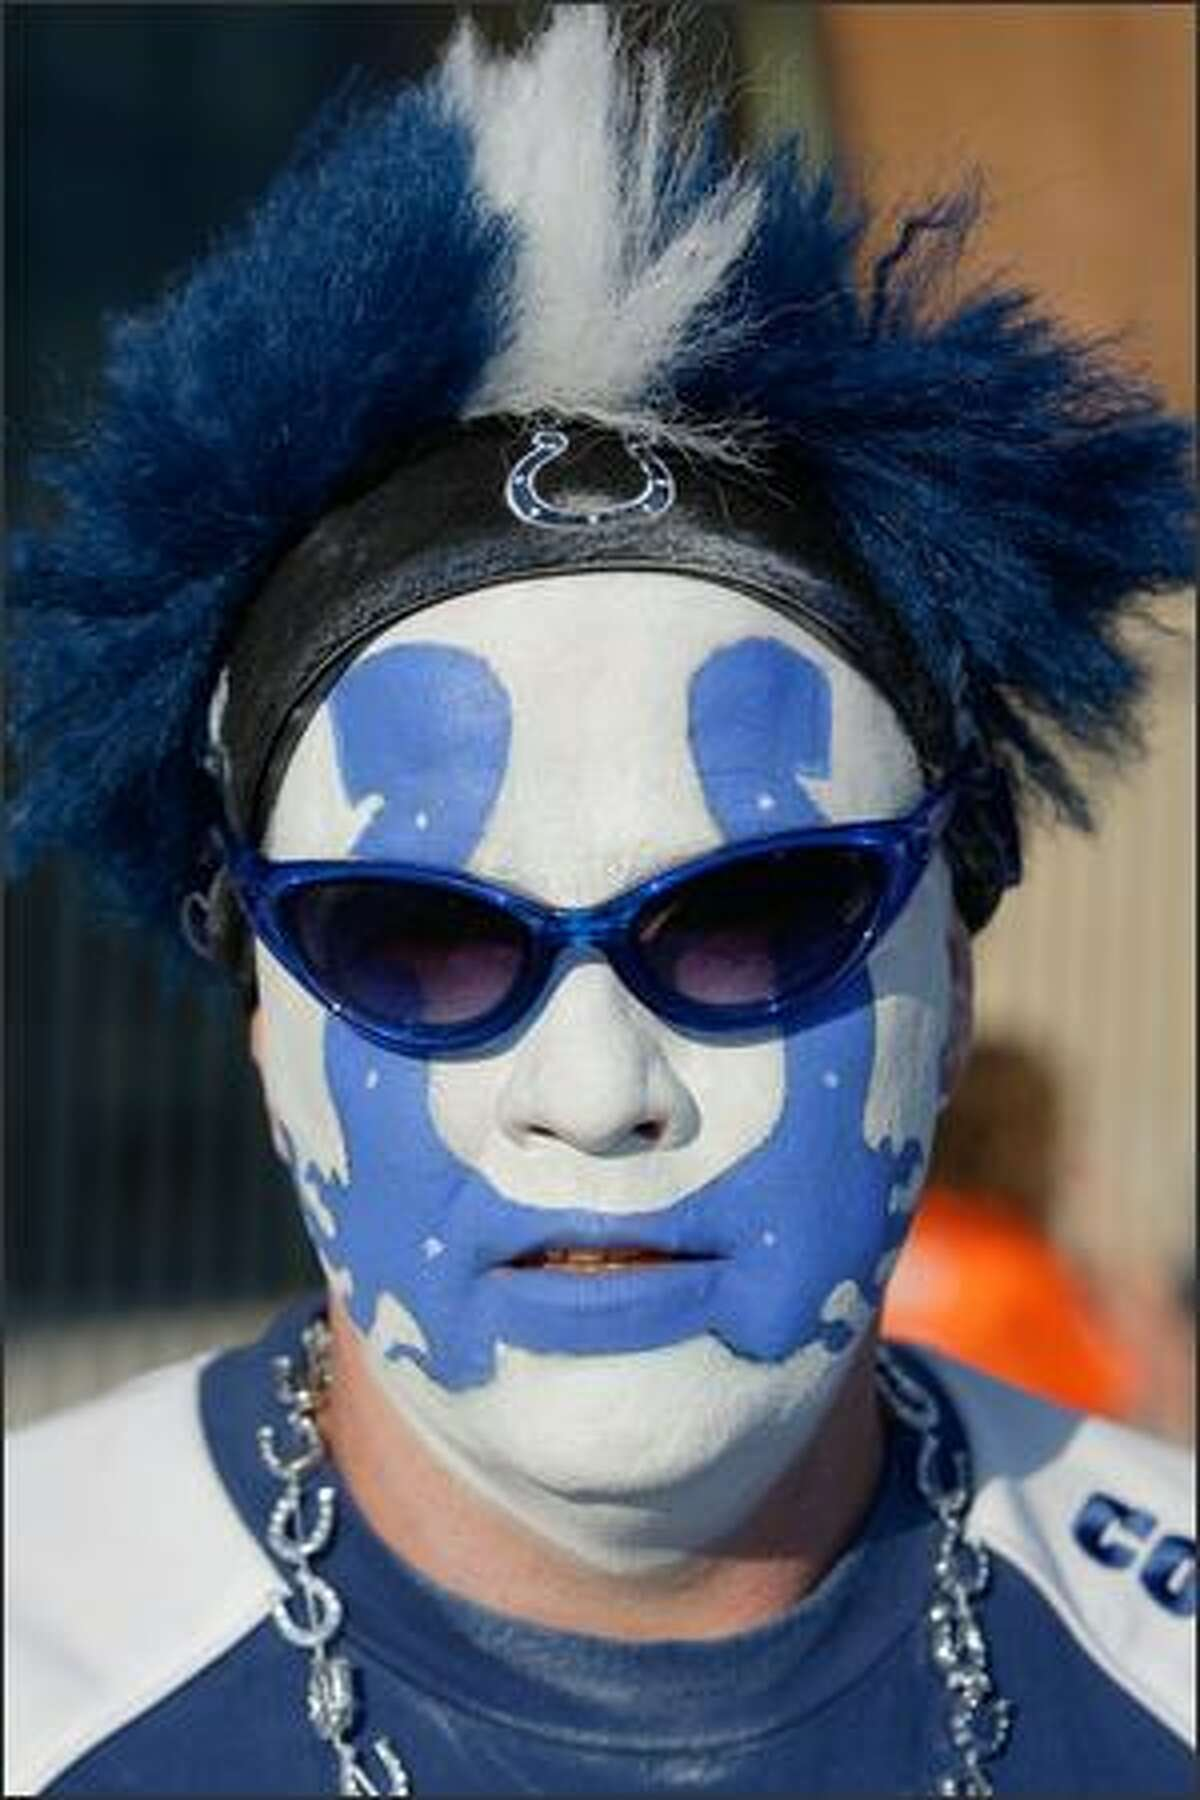 A fan of the Indianapolis Colts shows his support prior to the NFL game between the Chicago Bears and the Indianapolis Colts at Lucas Oil Stadium on Sept. 7.